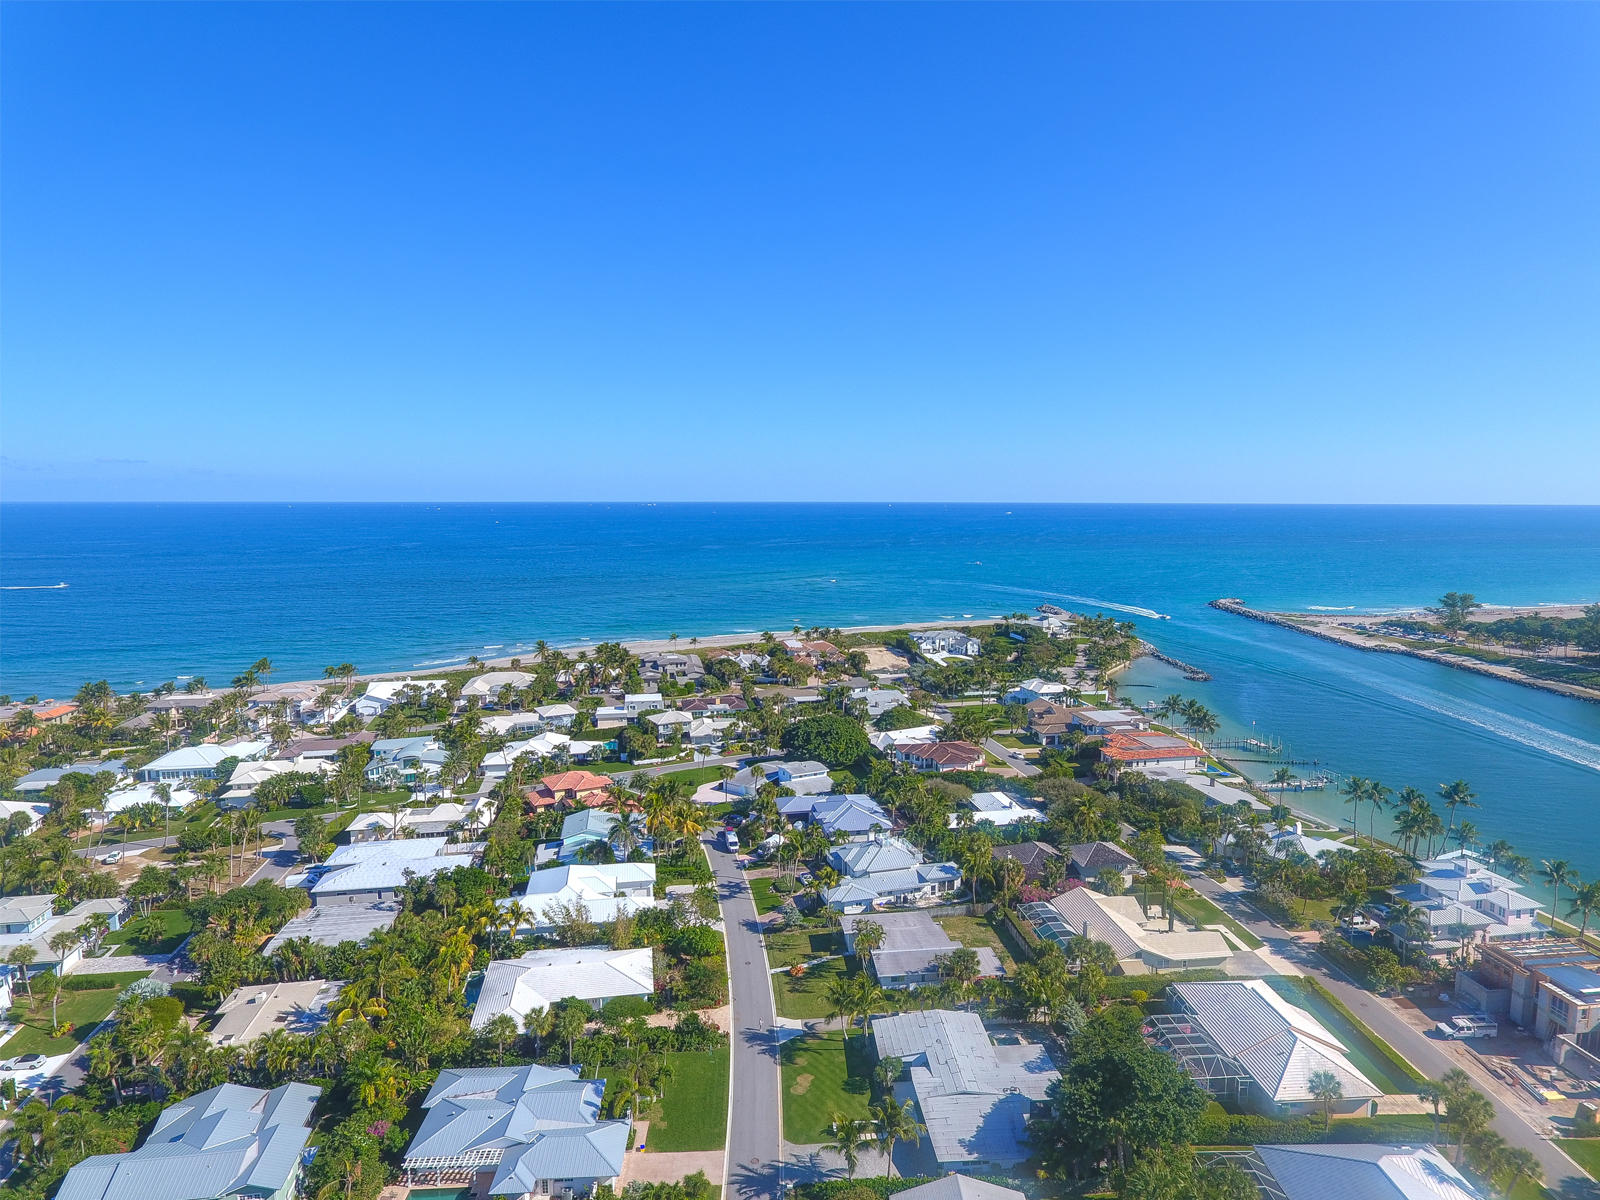 222 Pirates Place, Jupiter Inlet Colony, Florida 33469, 2 Bedrooms Bedrooms, ,2 BathroomsBathrooms,A,Single family,Pirates,RX-10614735